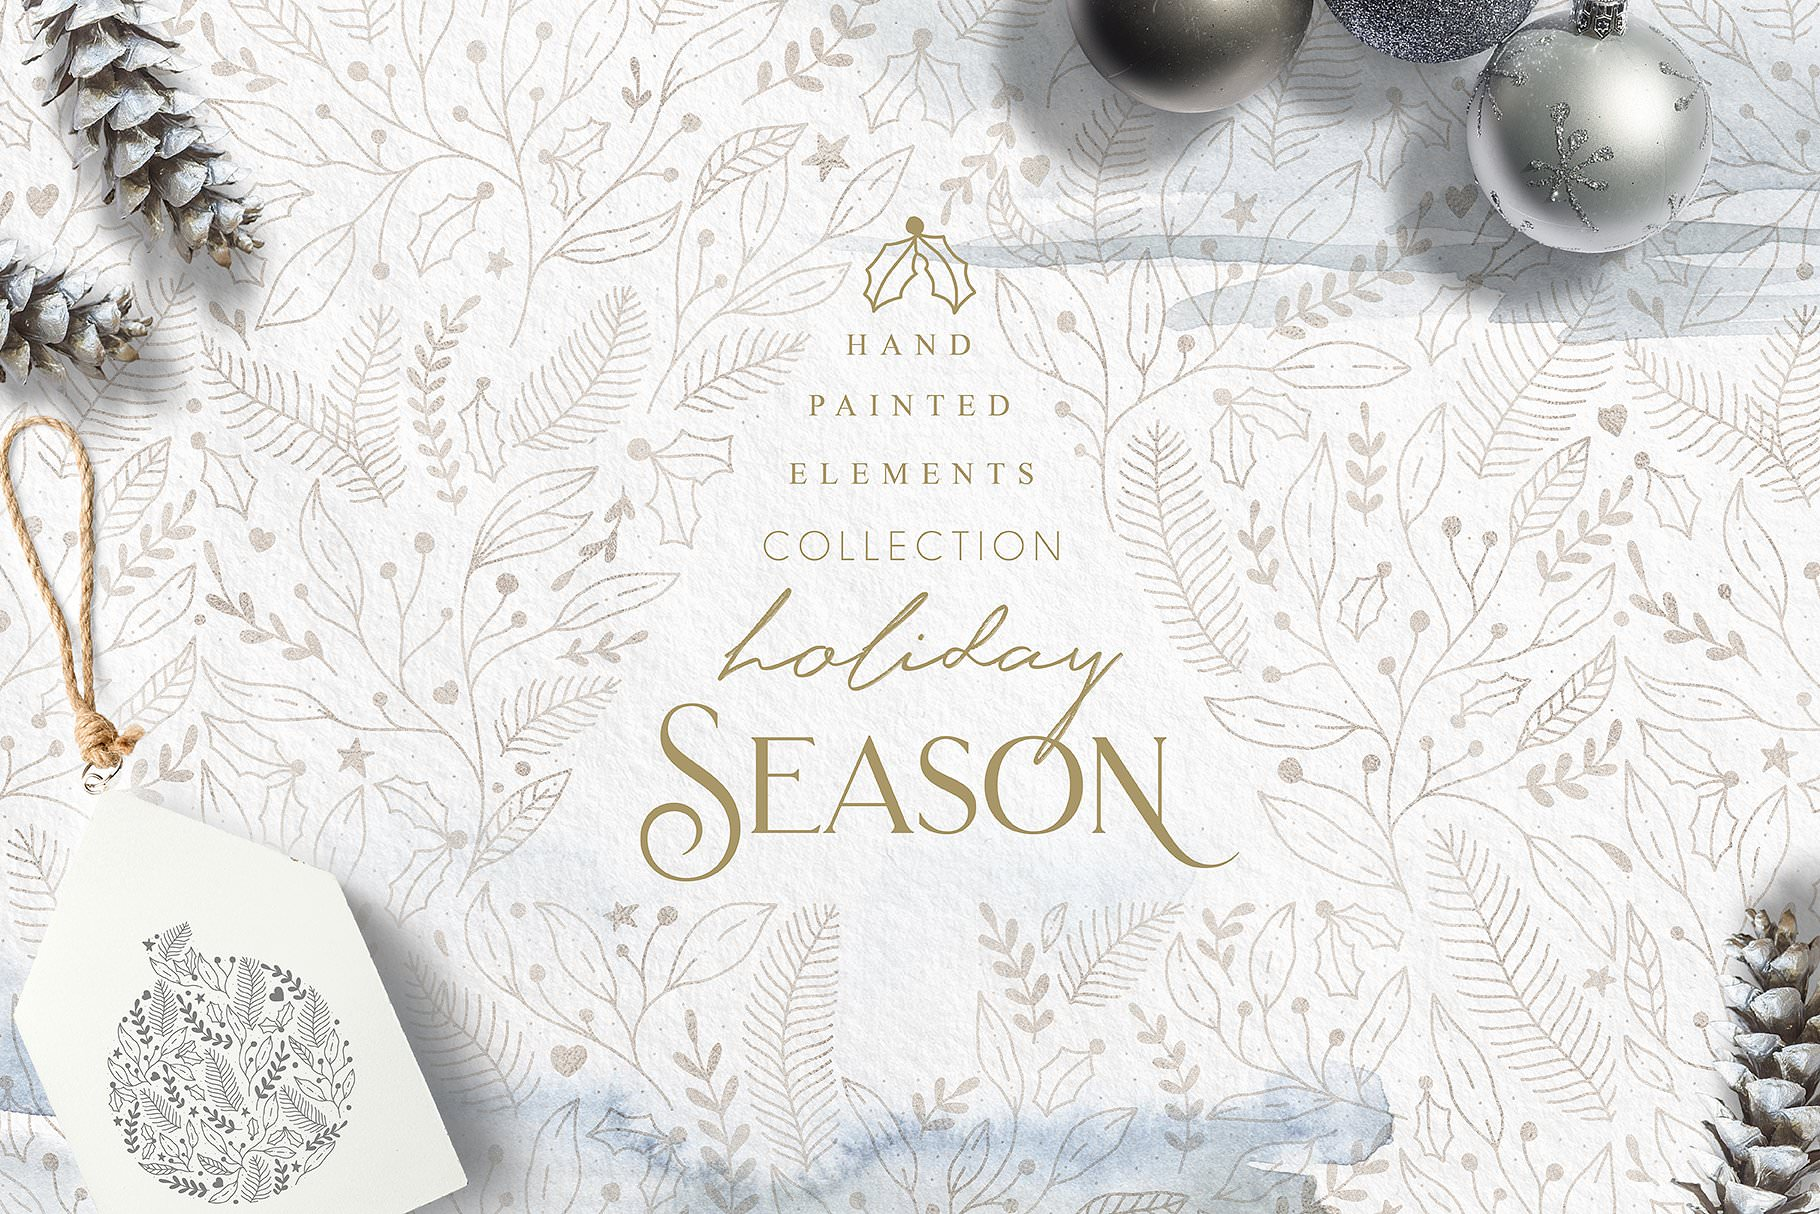 Holiday season collection with hand painted elements.